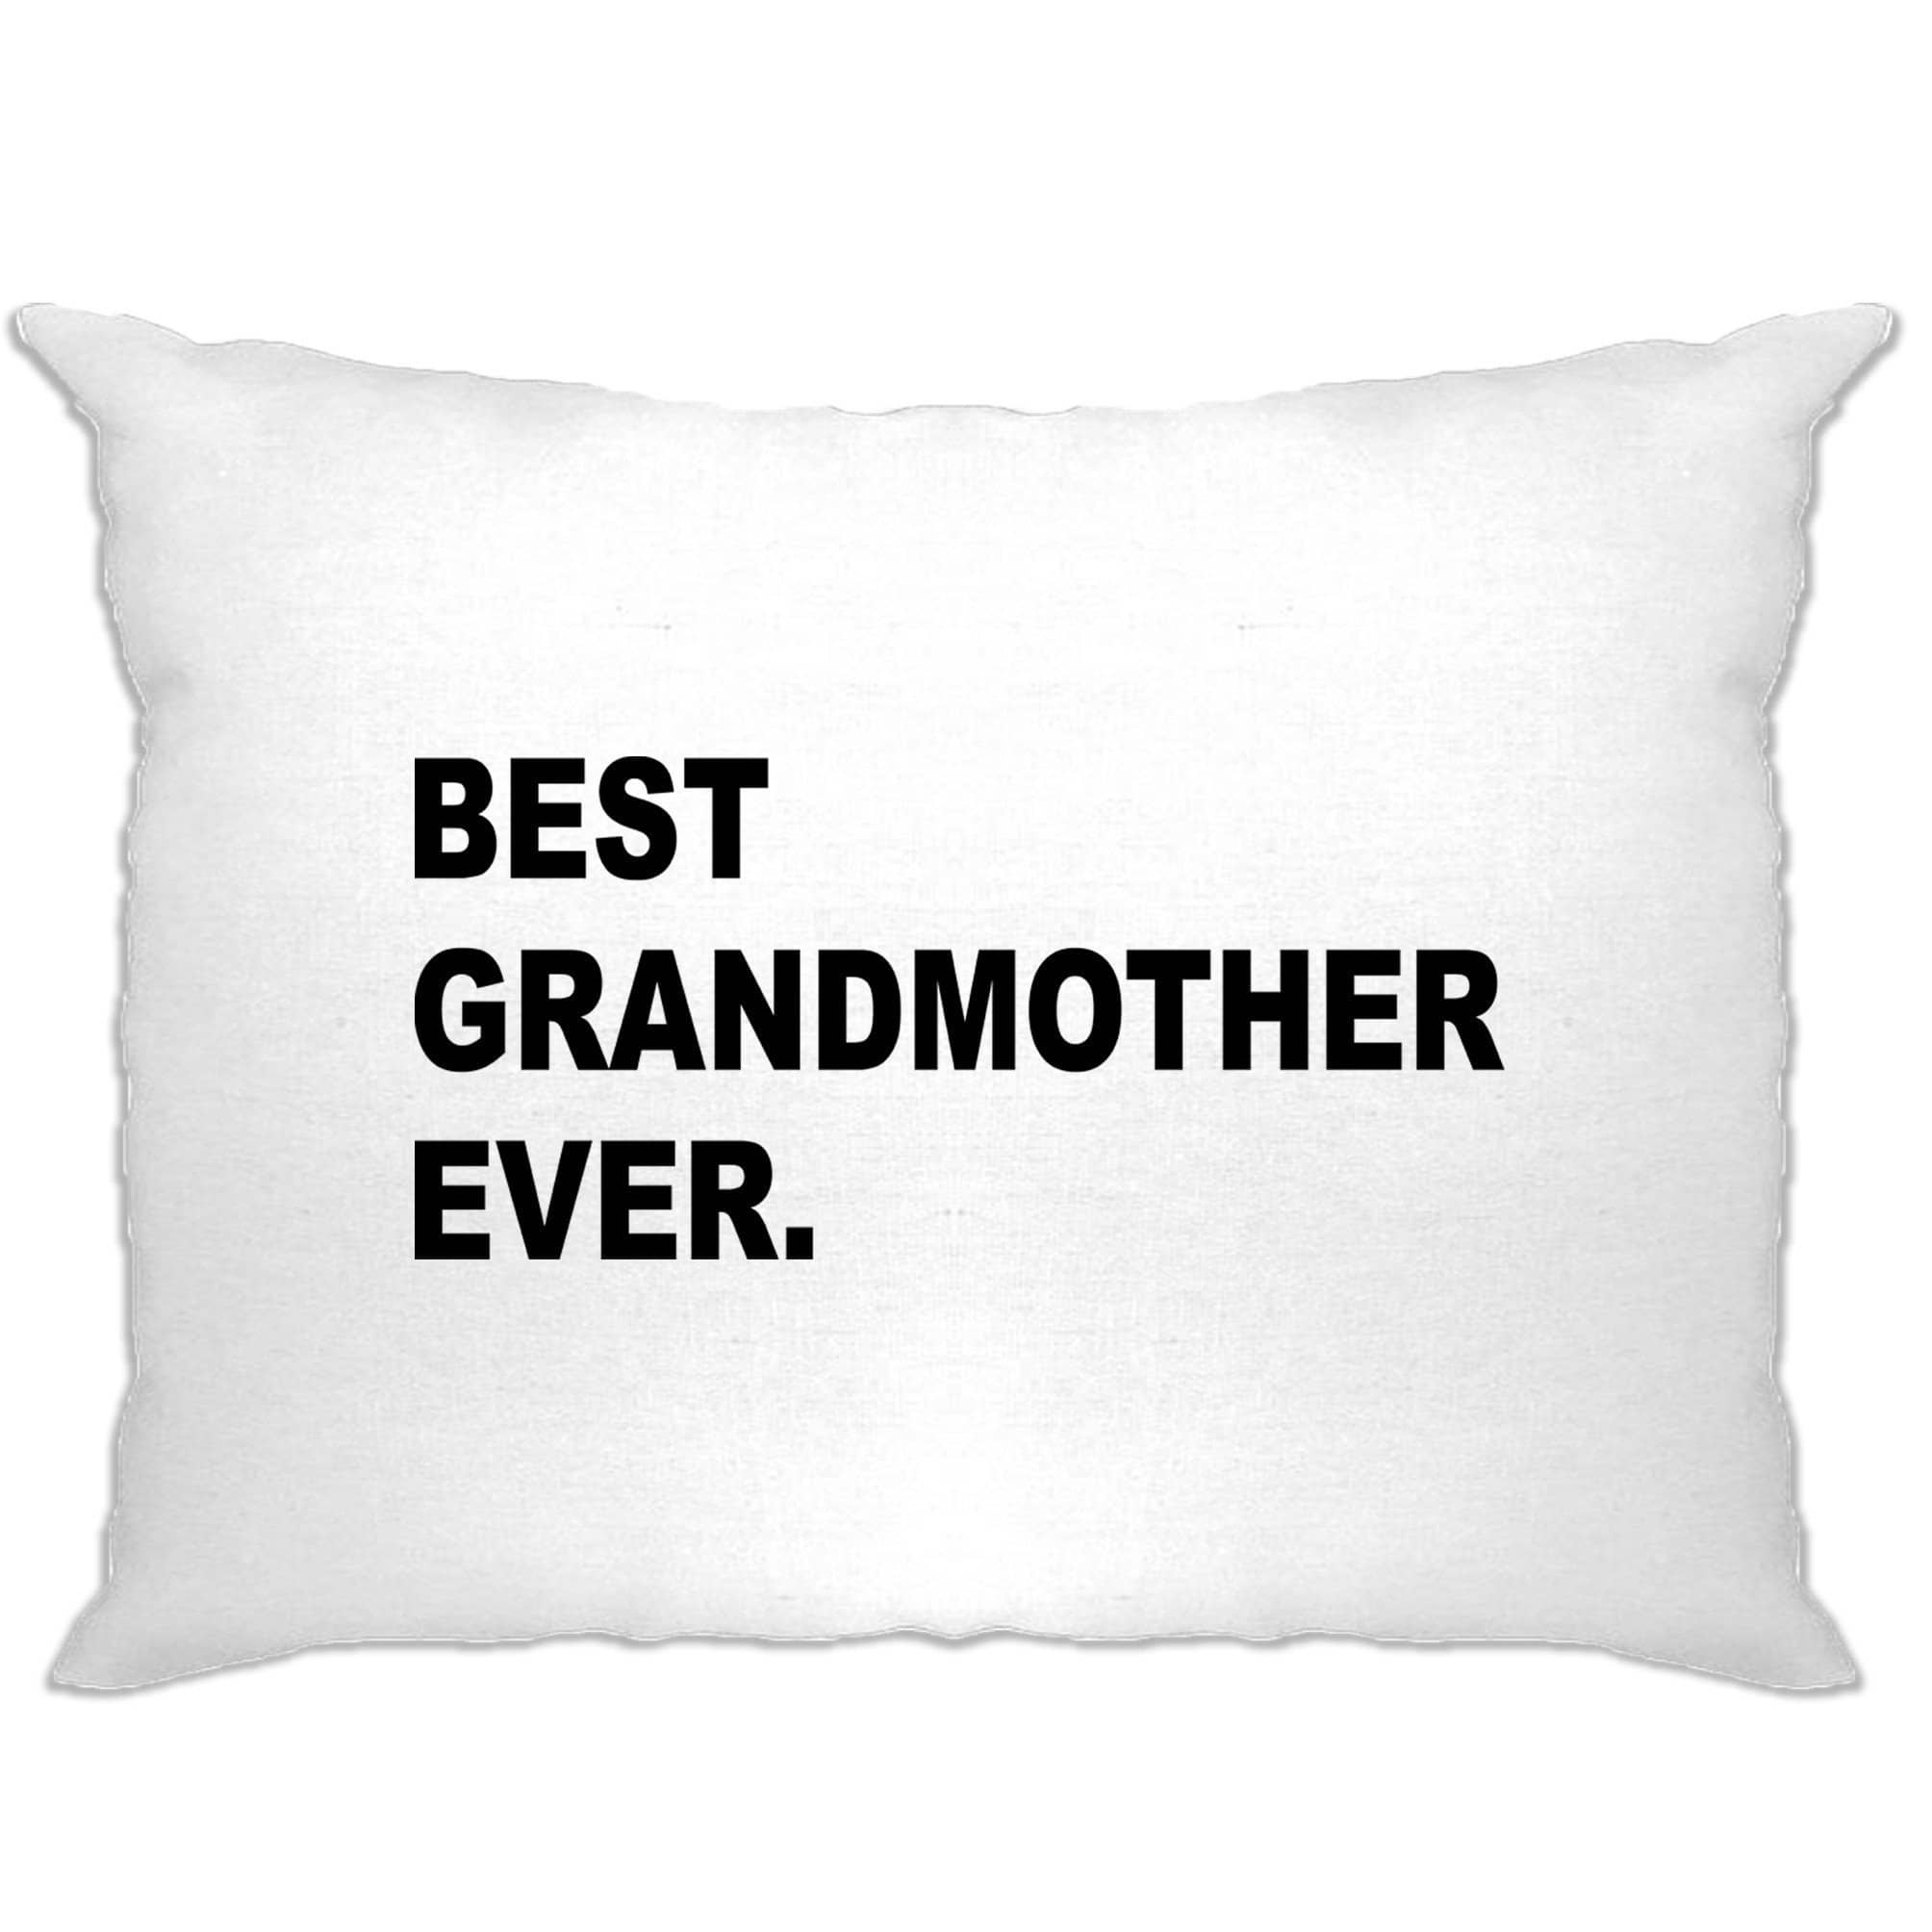 Best Grandmother Ever Pillow Case Parent Family Slogan